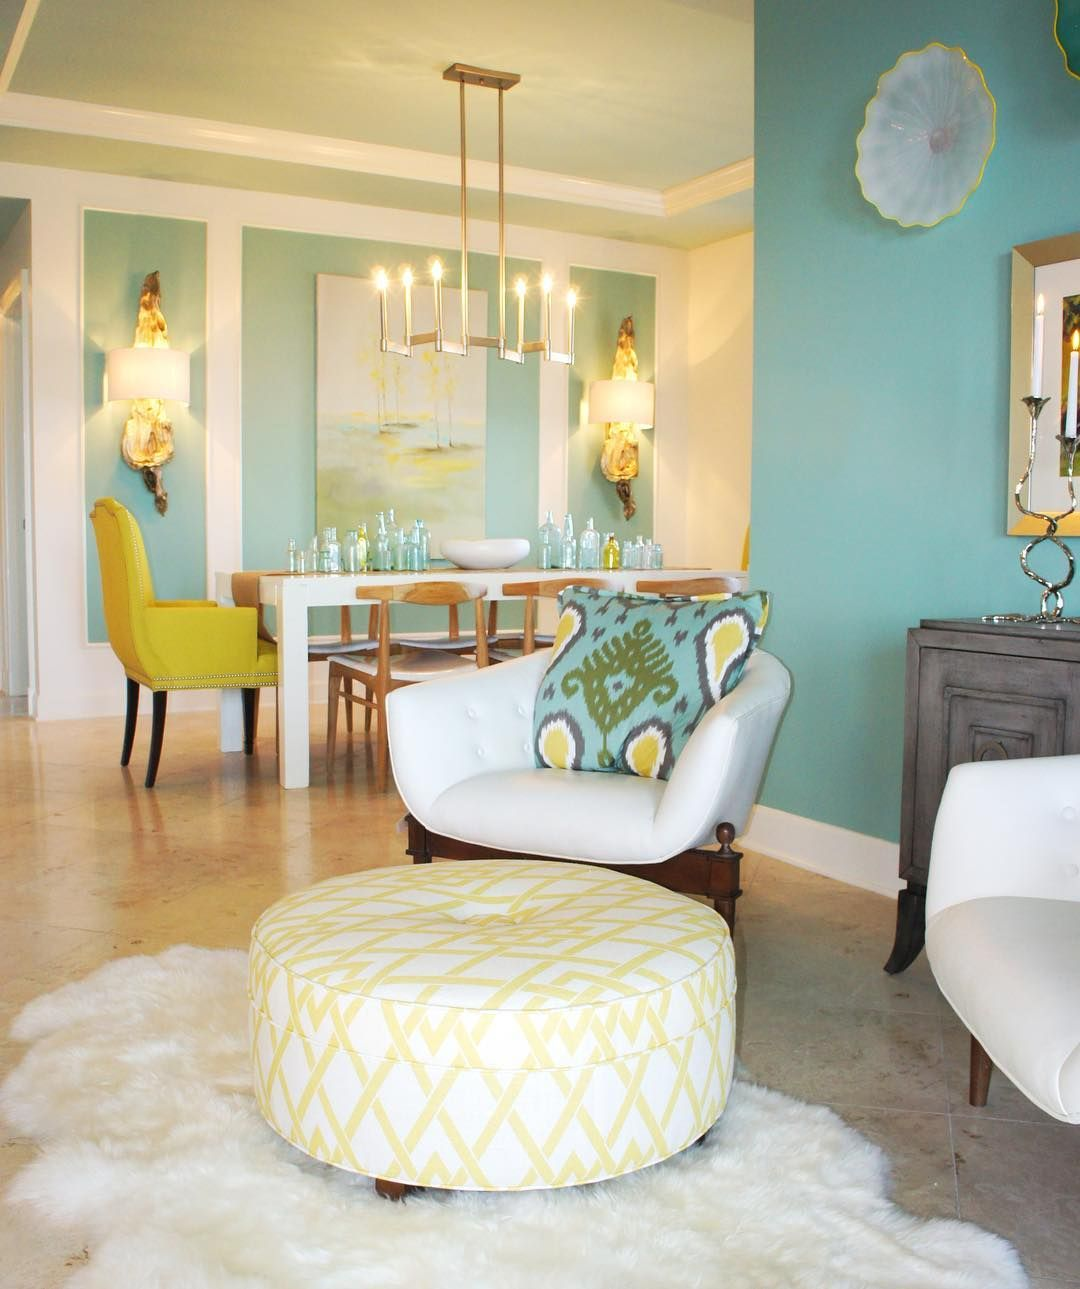 bright paint colors interior paint colors coastal on beach house interior color schemes id=43405